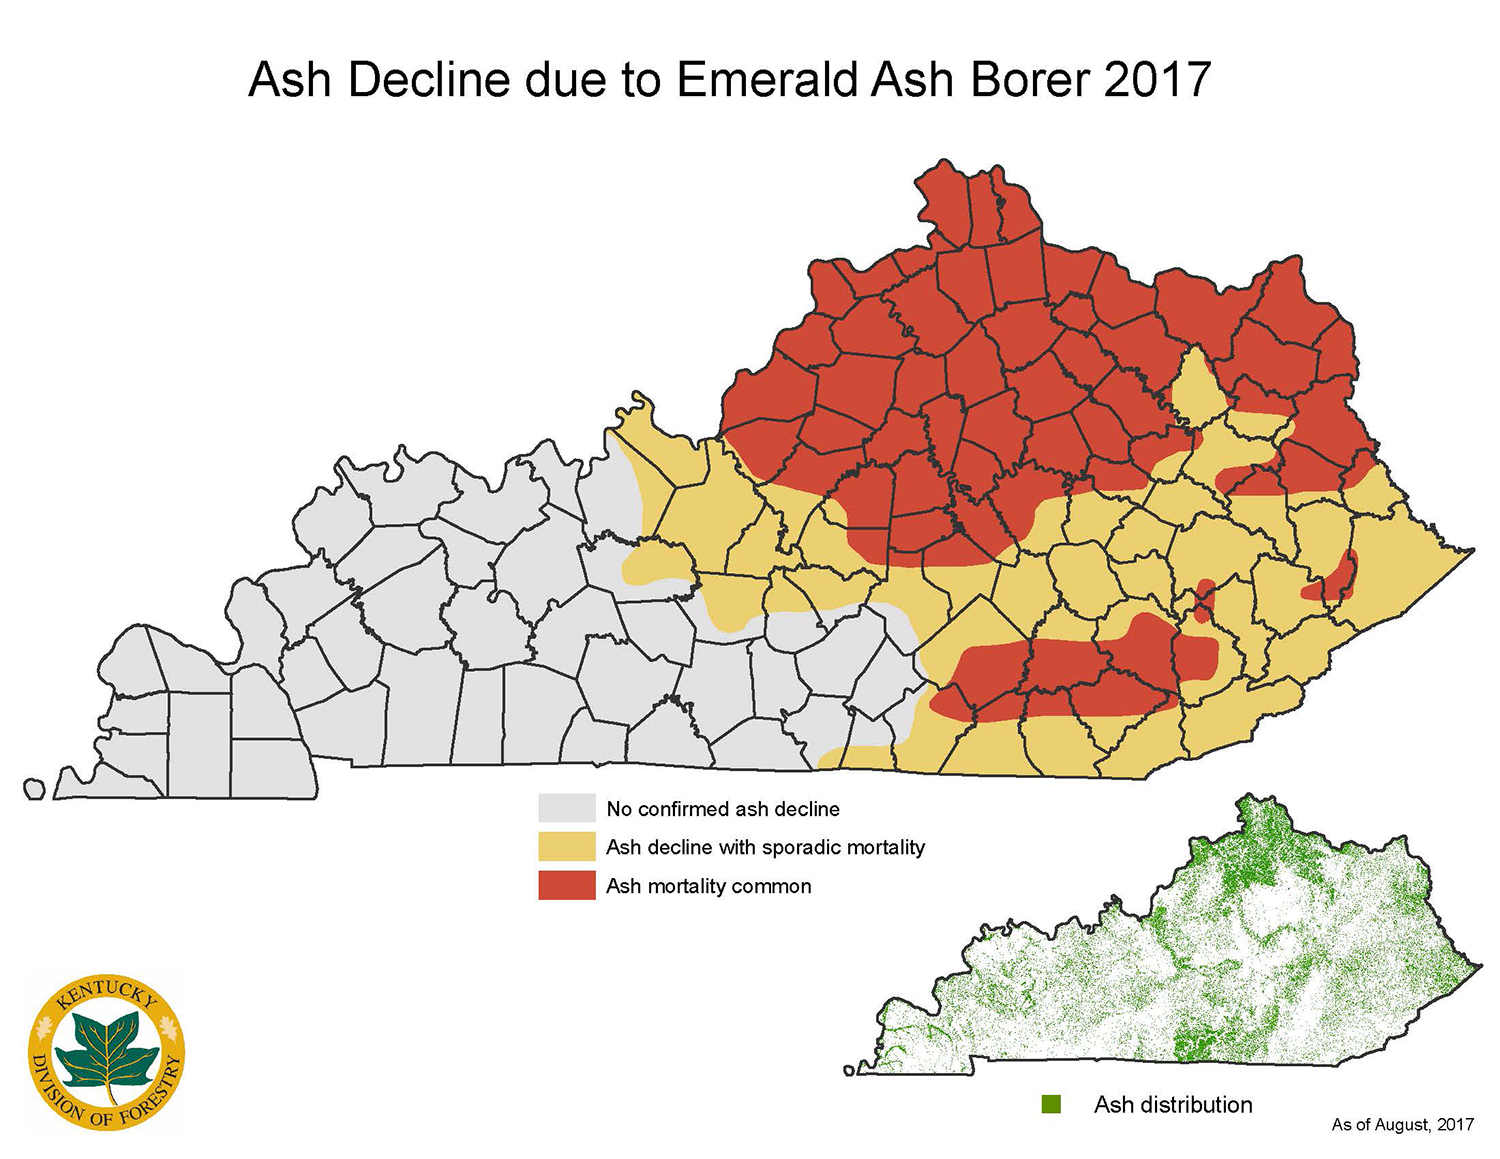 Emerald Ash Borers 2018 | Kentucky Pest News on franklin county on a map, united states map, vanderbilt on a map, coosa river on a map, osu on a map, wind cave on a map, coconino county on a map, smith mountain lake on a map, wyoming on a map, states on a map, brownsville on a map, kentucky on fire, wichita on a map, usa map, dearborn on a map, kentucky on us map, guangxi on a map, lake livingston on a map, caddo lake on a map, oak ridge on a map,